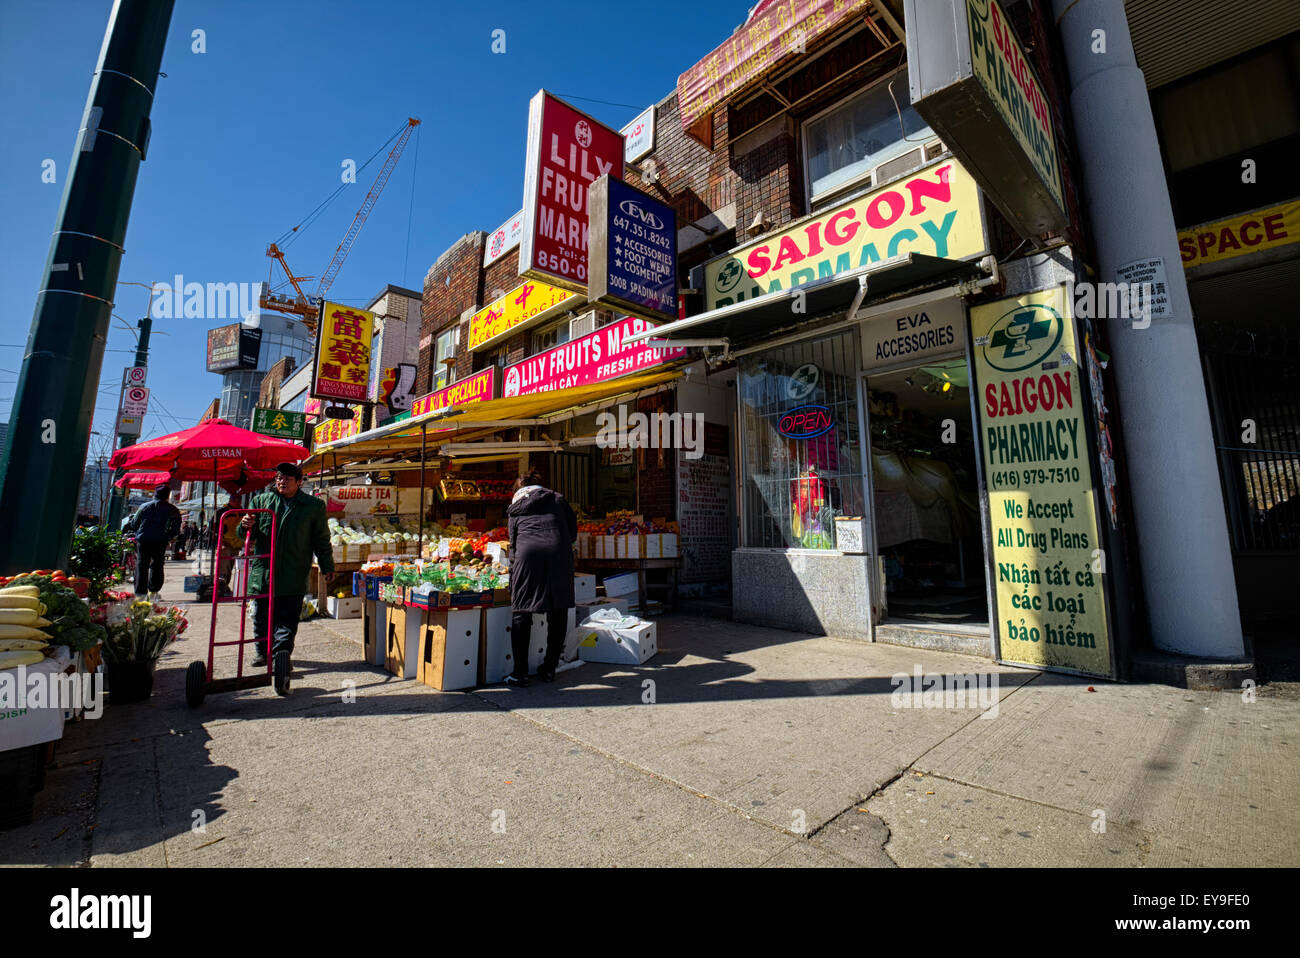 China town stalls, Toronto city, ON, CA - Stock Image